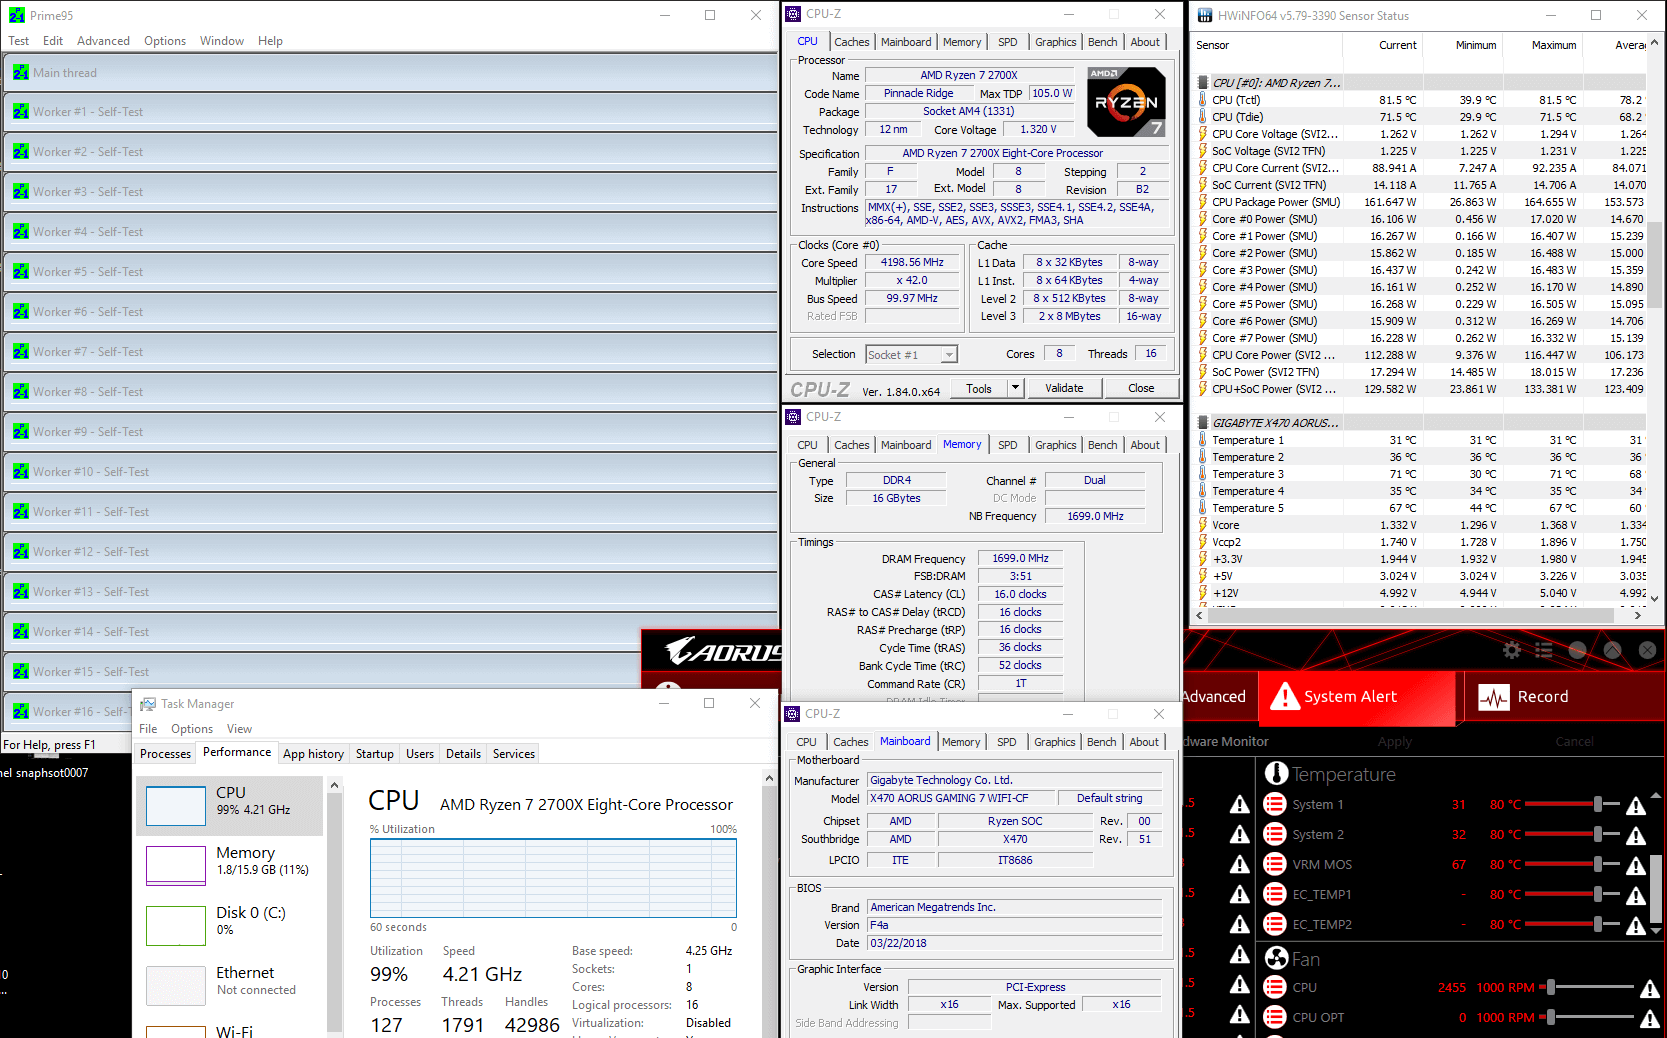 AMD Ryzen 2700X with stable overclocking to 4.2GHz on X470 AORUS Gaming 7 WIFI